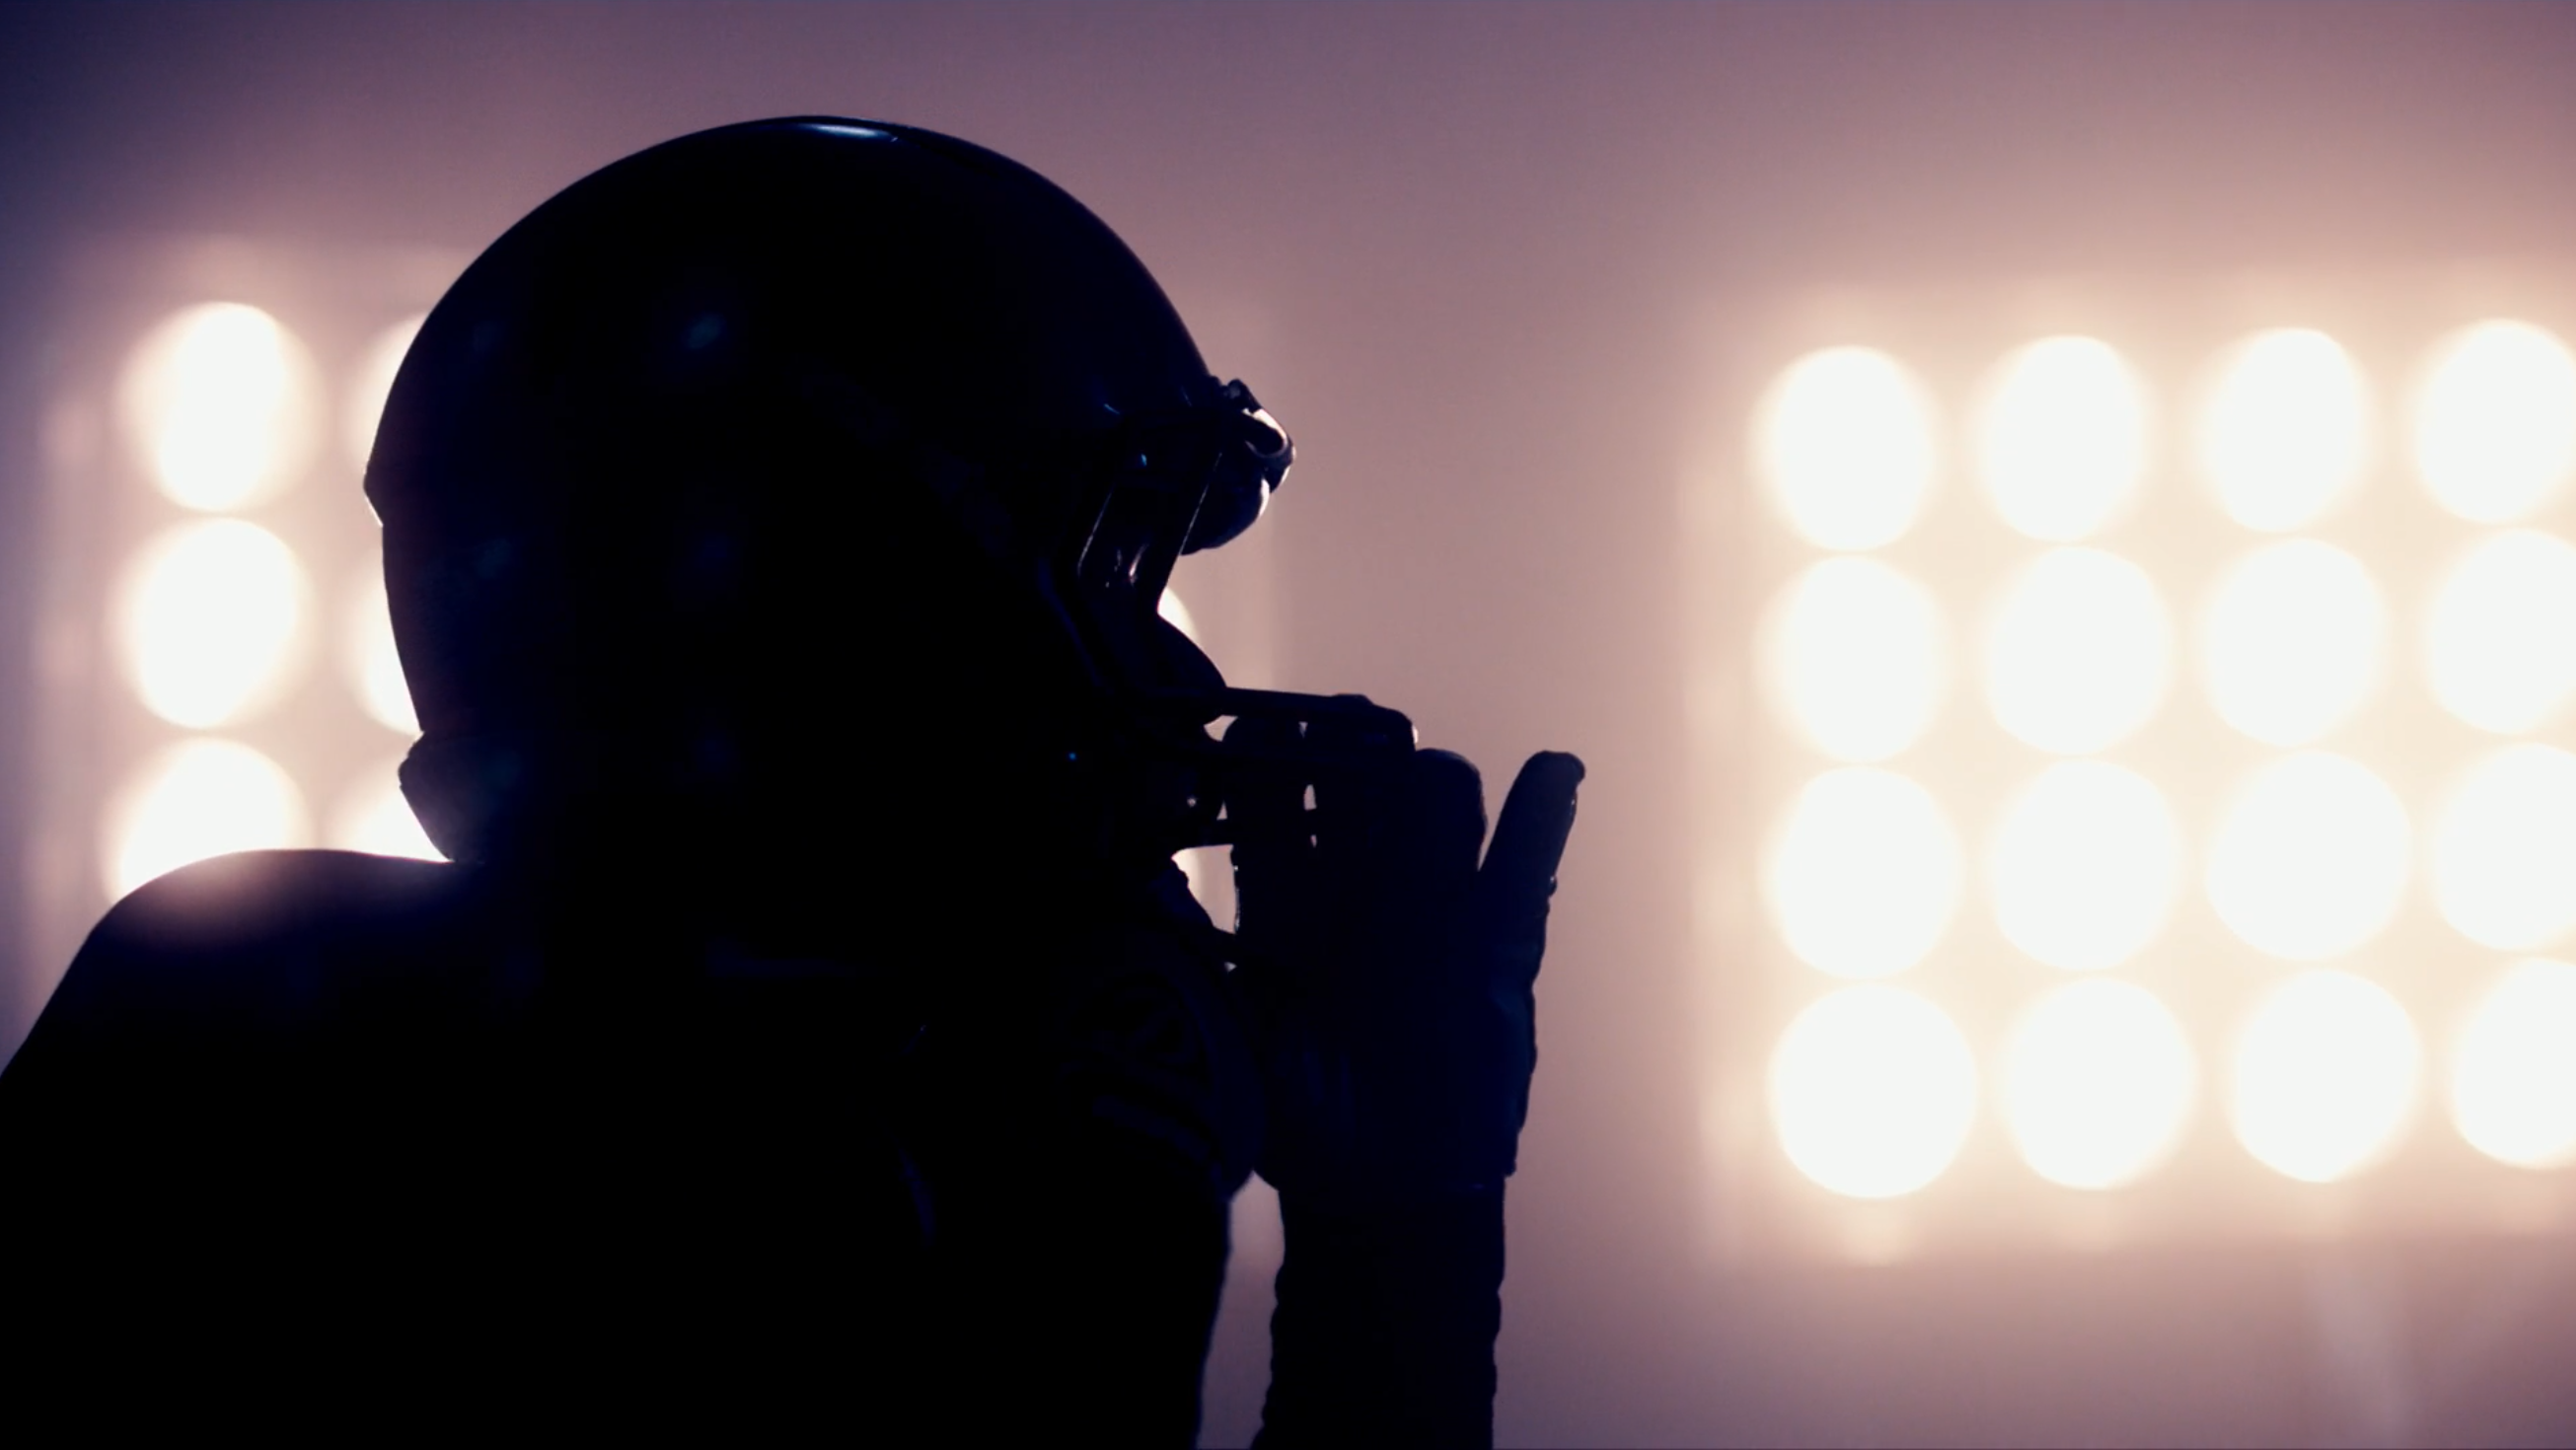 football player silhouetted by field lights